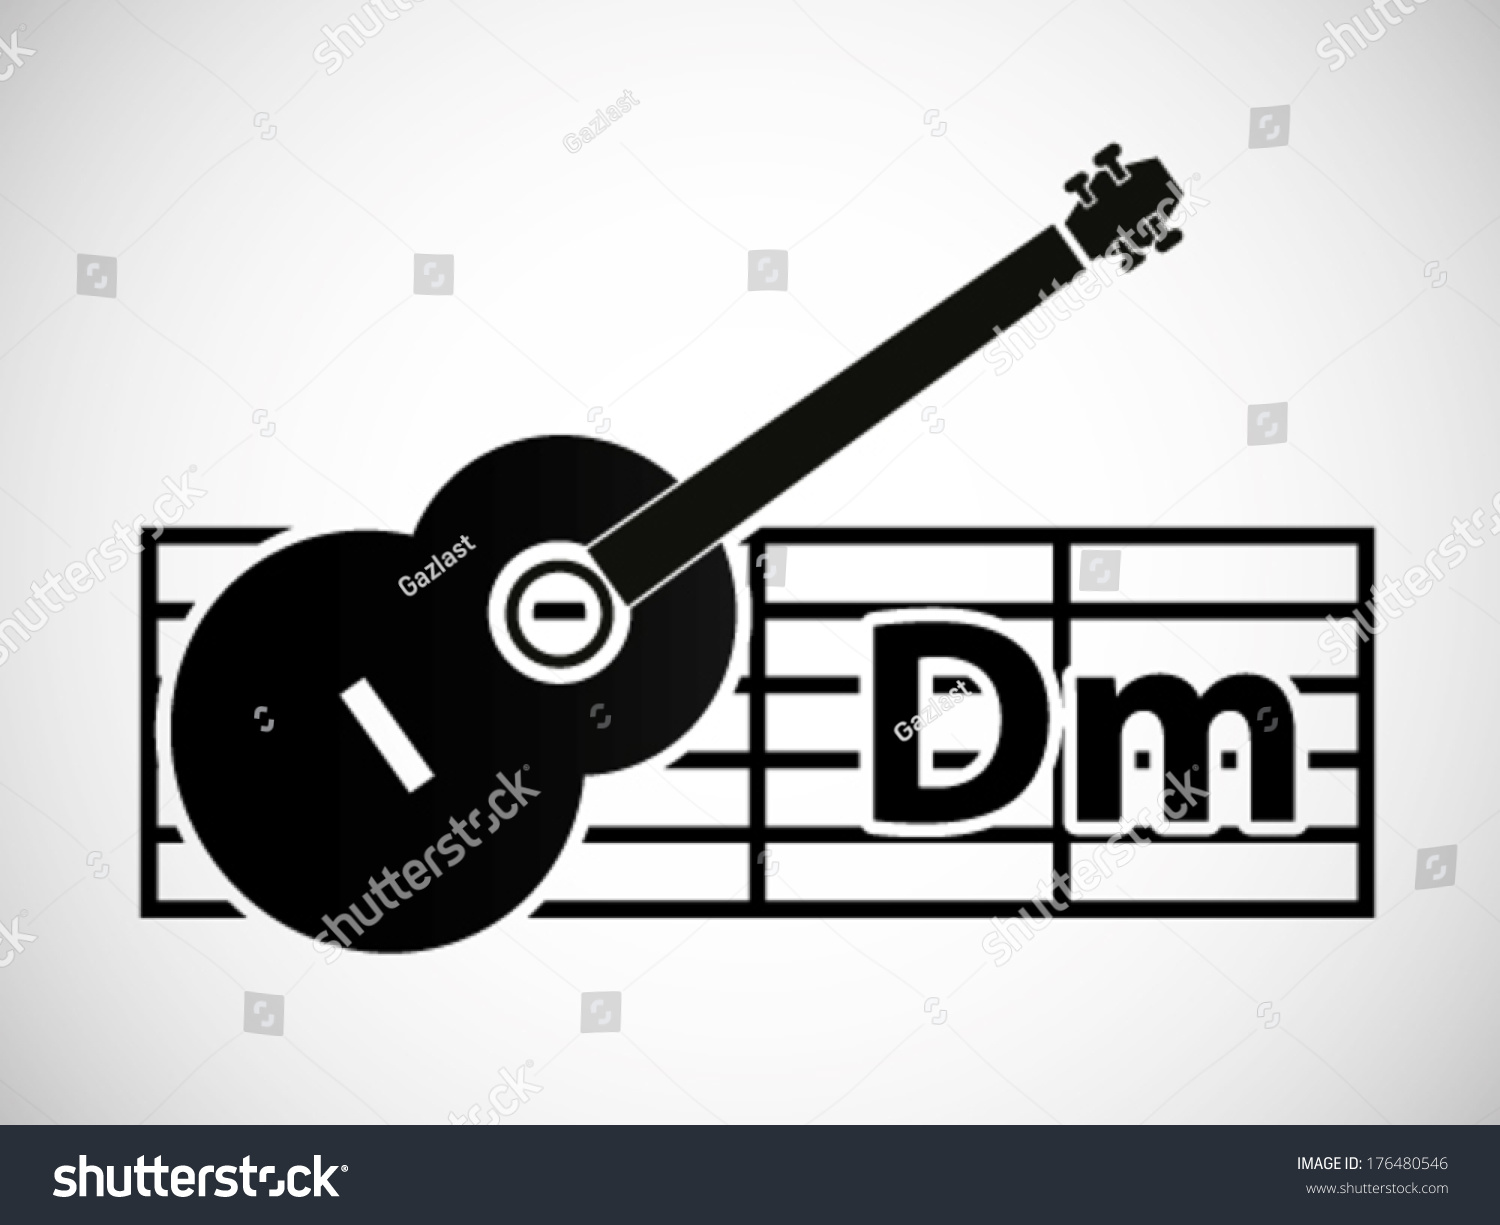 Guitar Chord Illustration D Minor Stock Vector Royalty Free